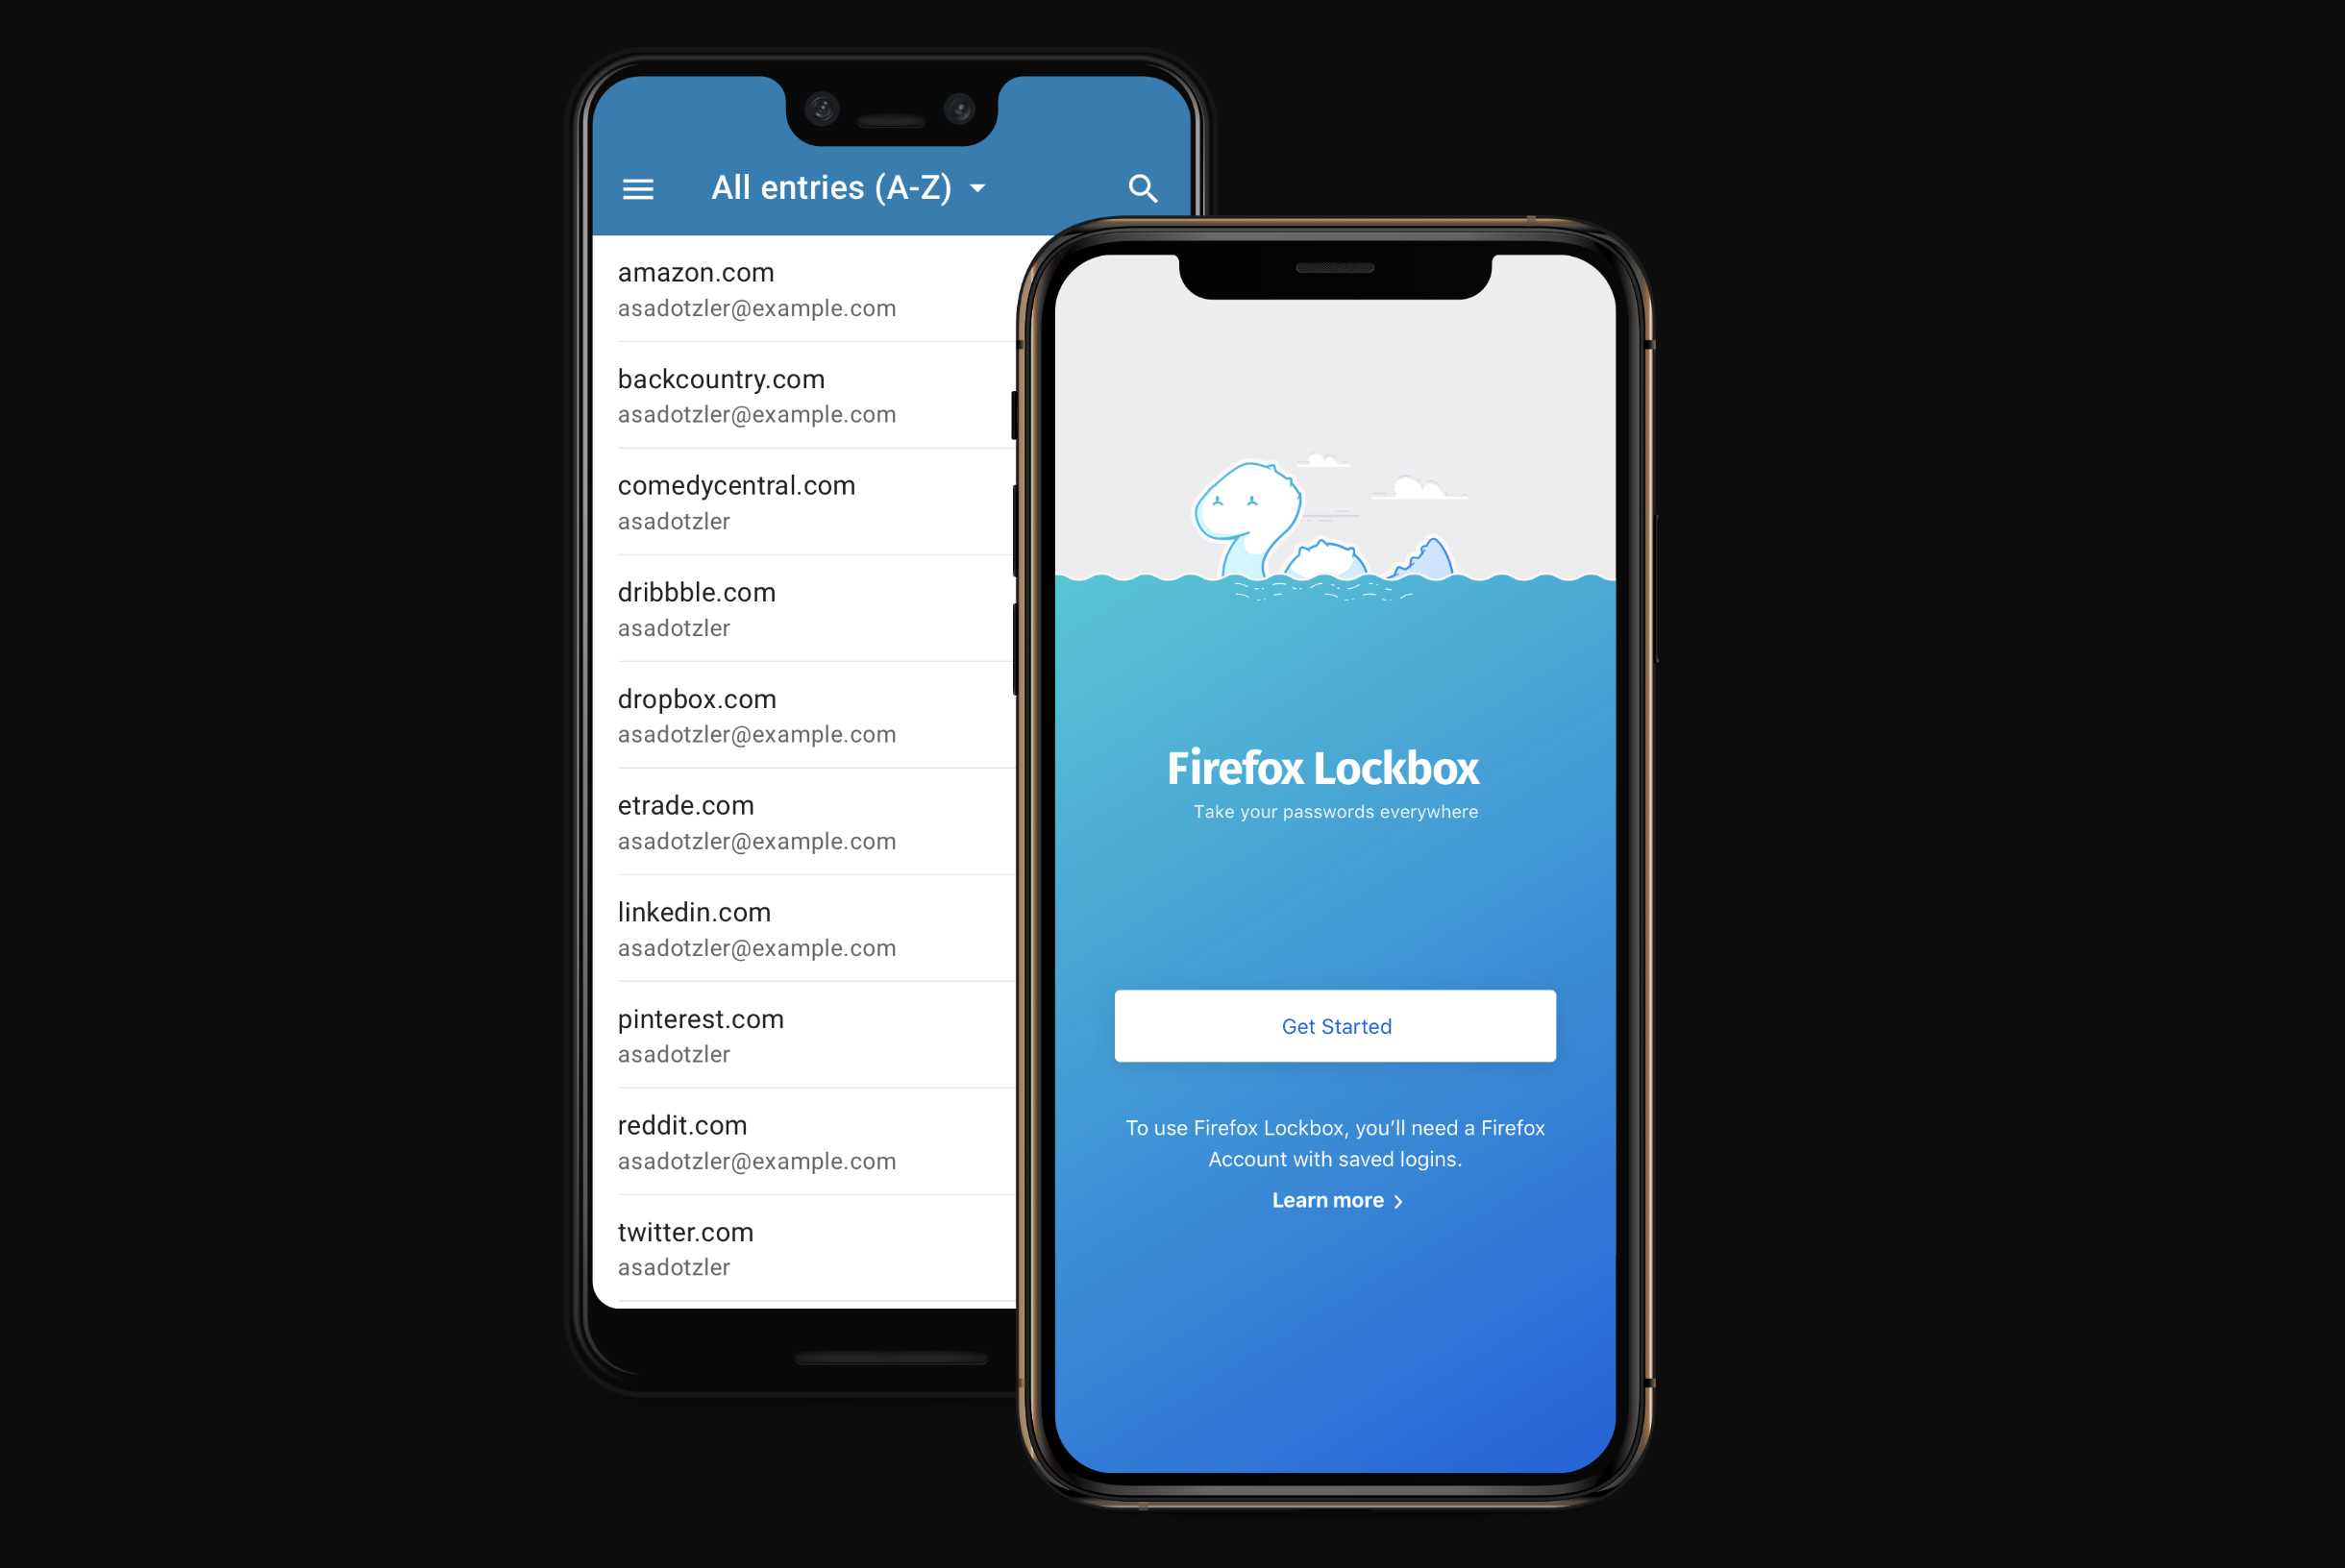 Mozilla's free password manager, Firefox Lockbox, launches on